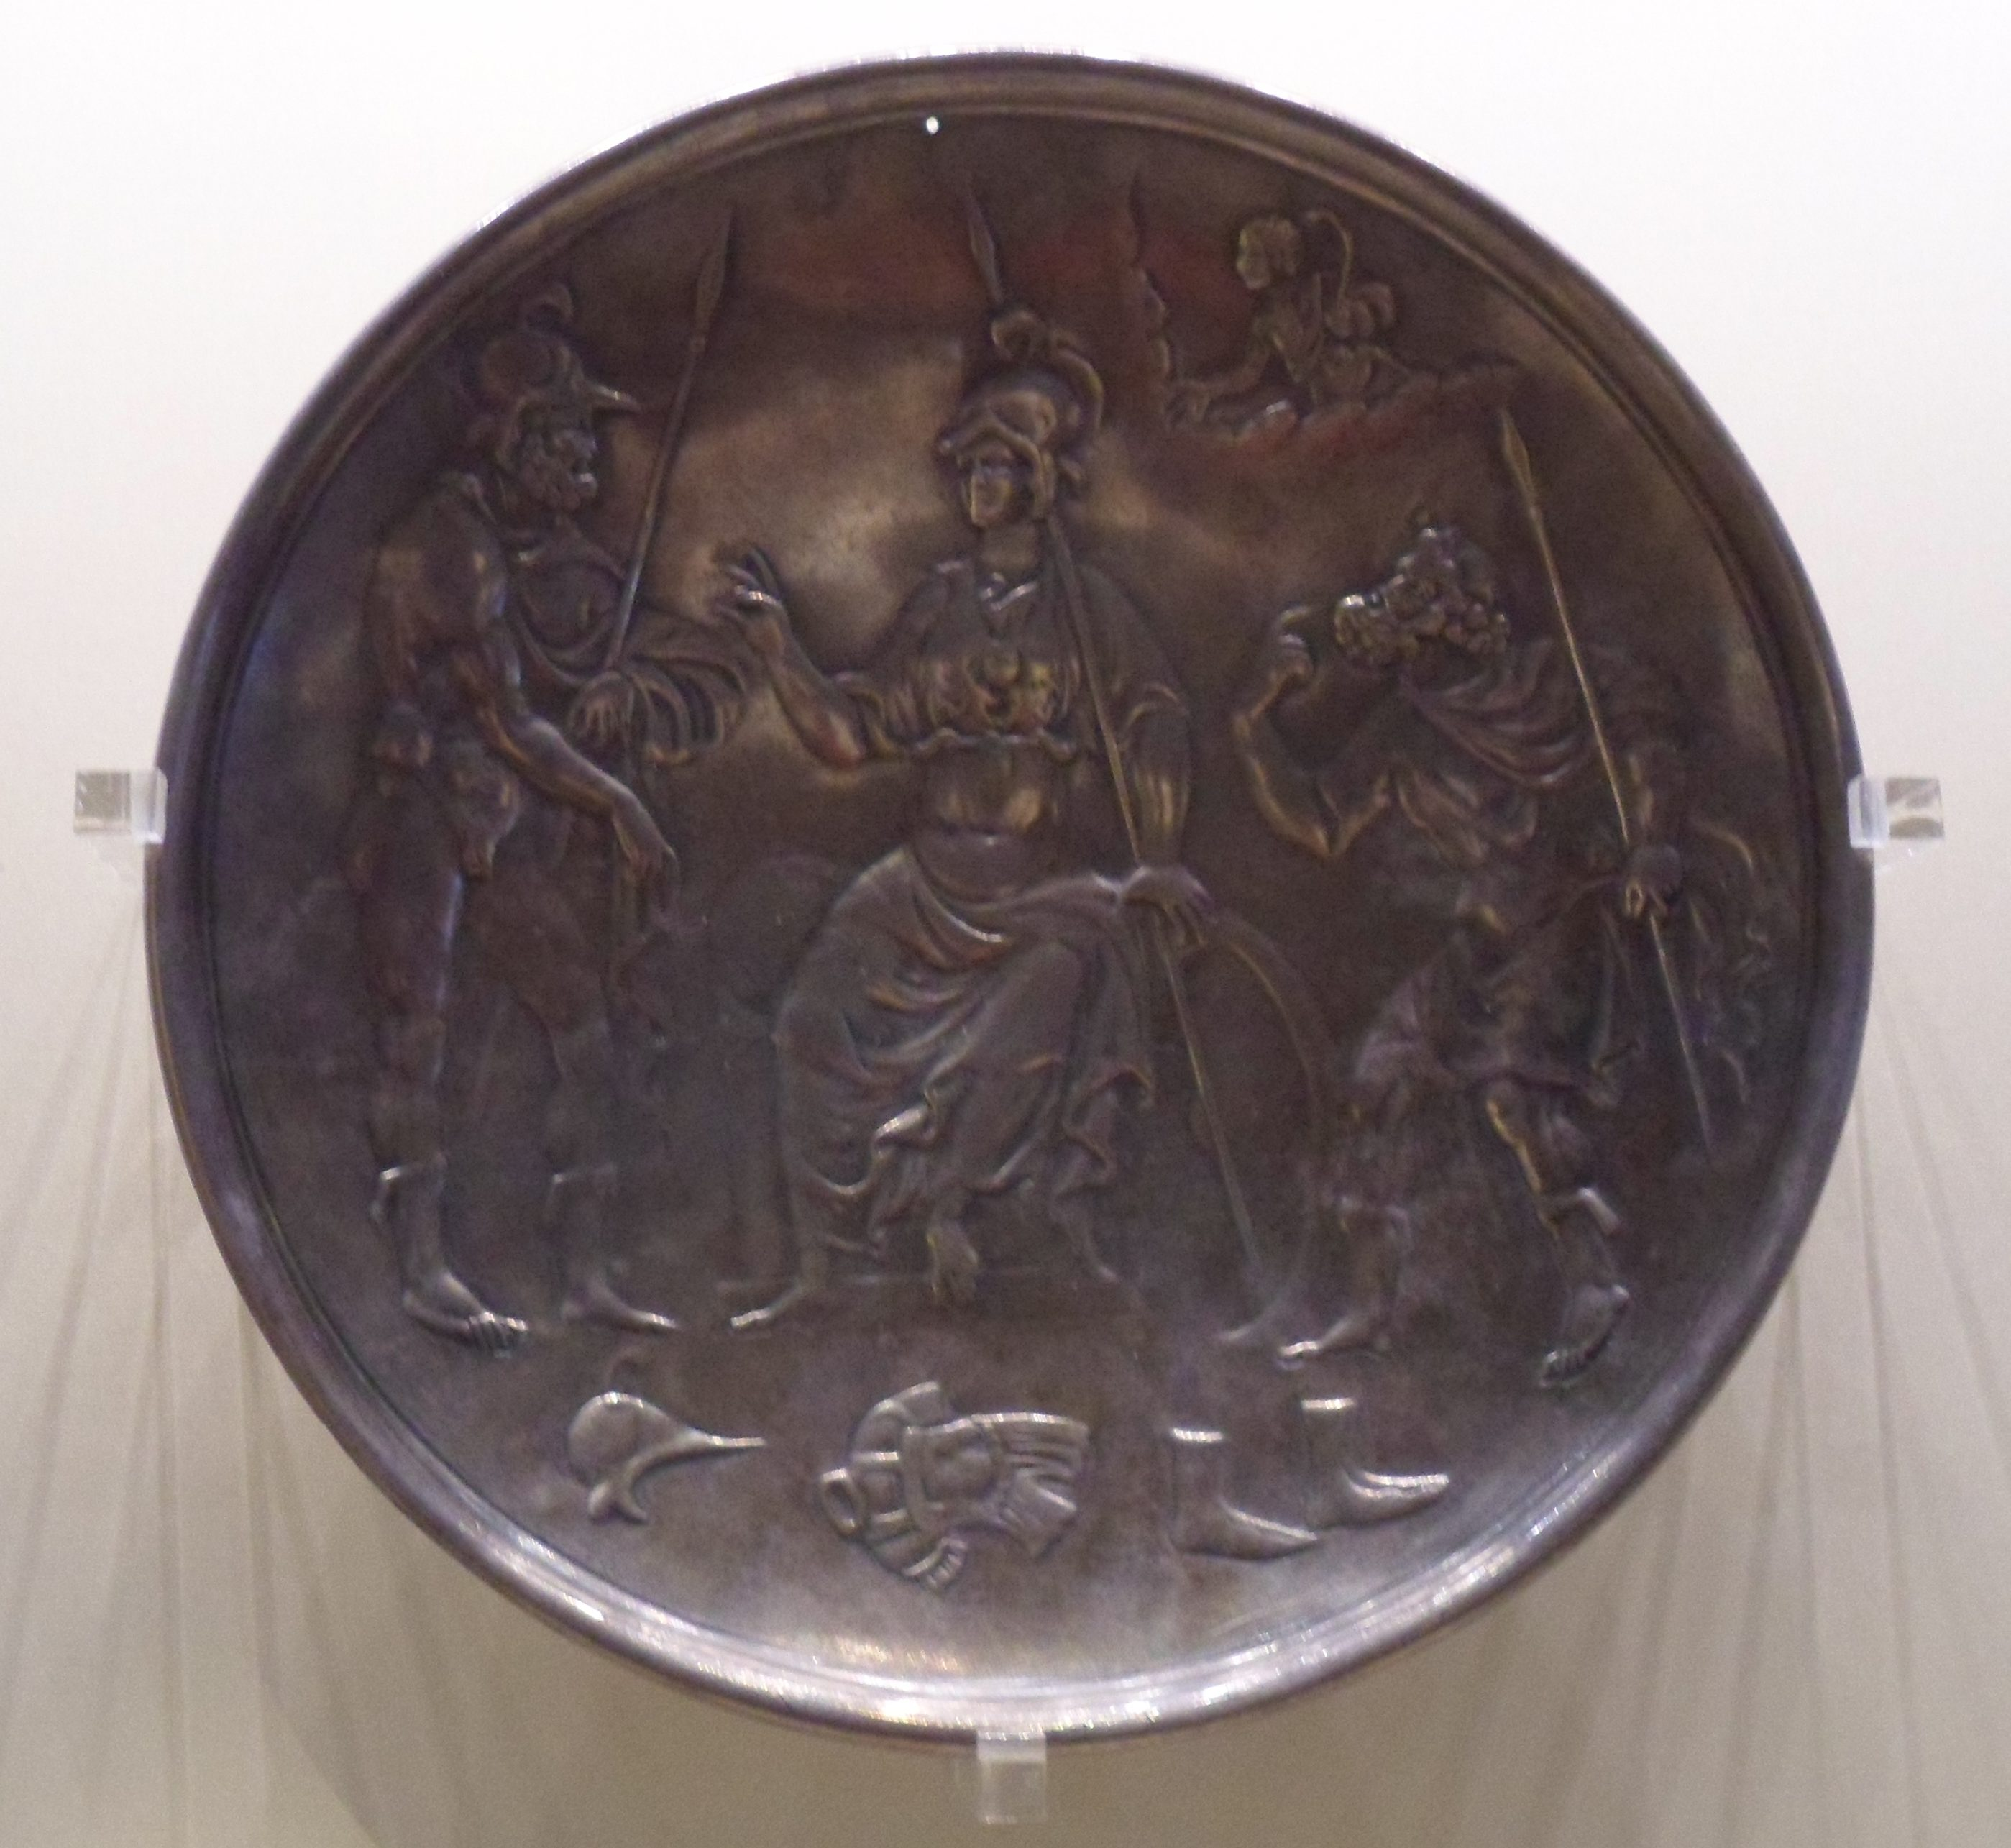 A wrought silver bowl showing Ajax, Athena, and Odysseus